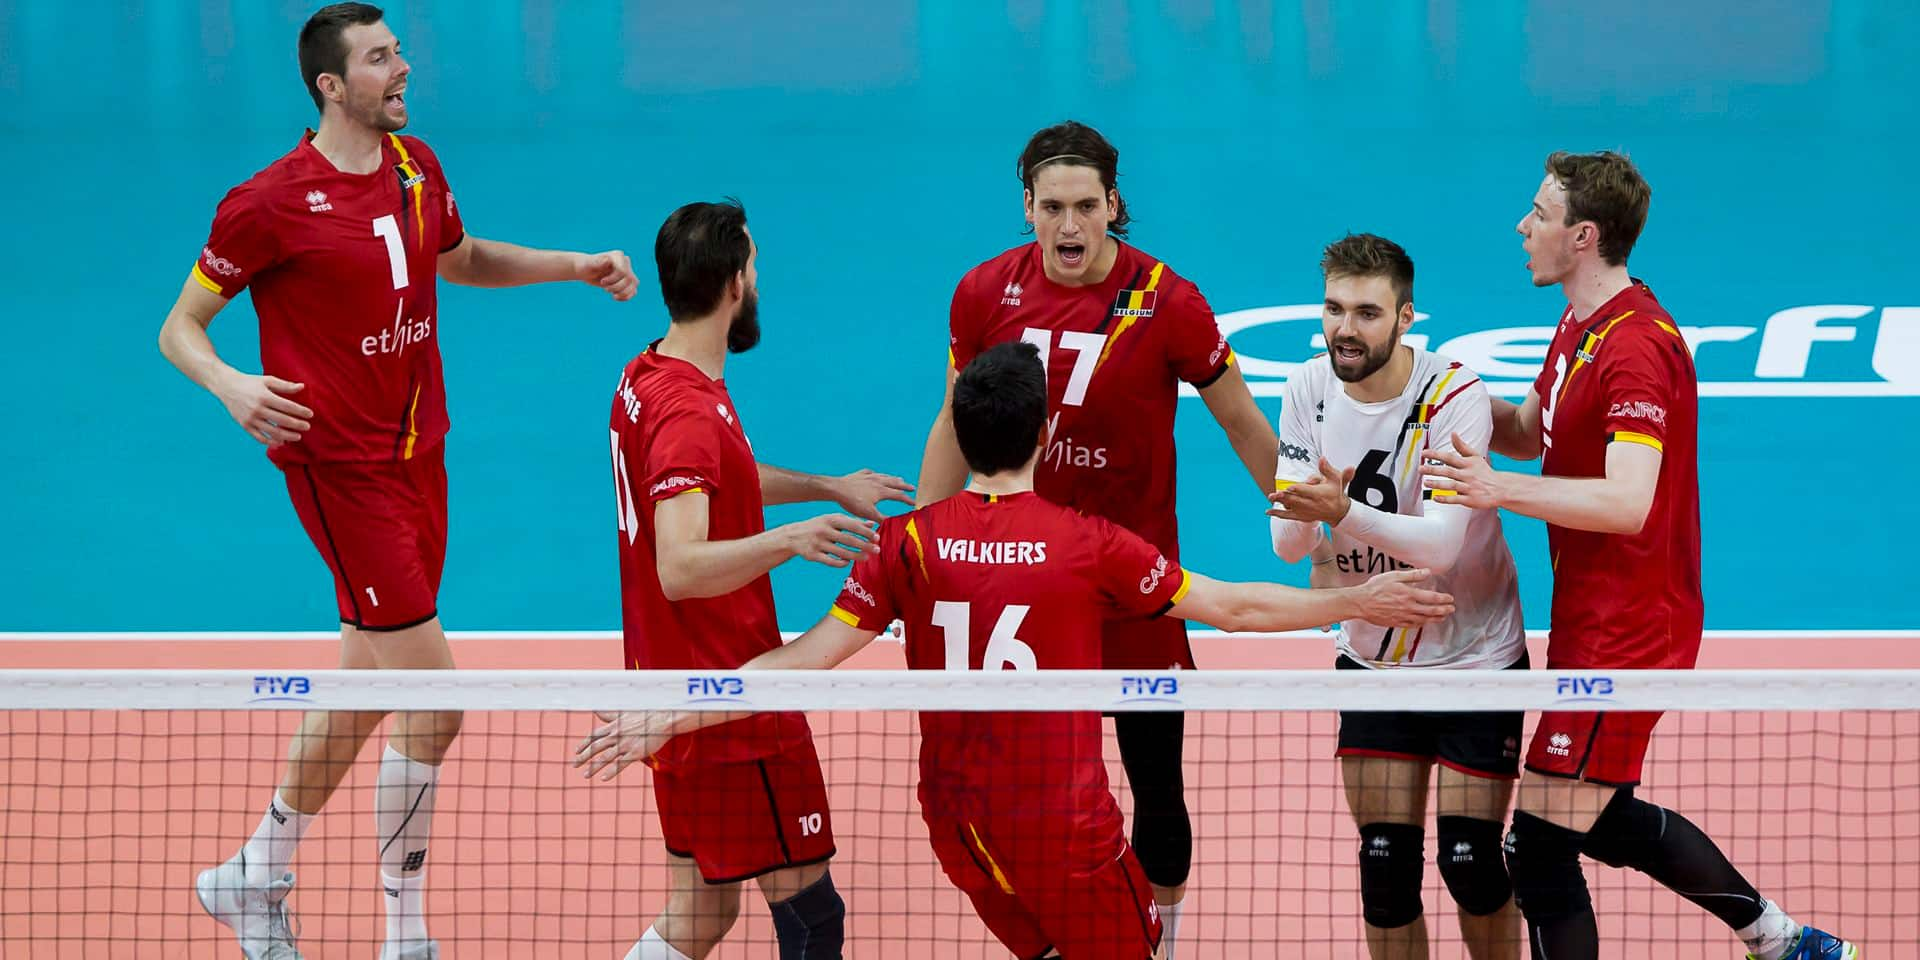 Volley-ball: Tokyo 2020 s'éloigne pour les Red Dragons